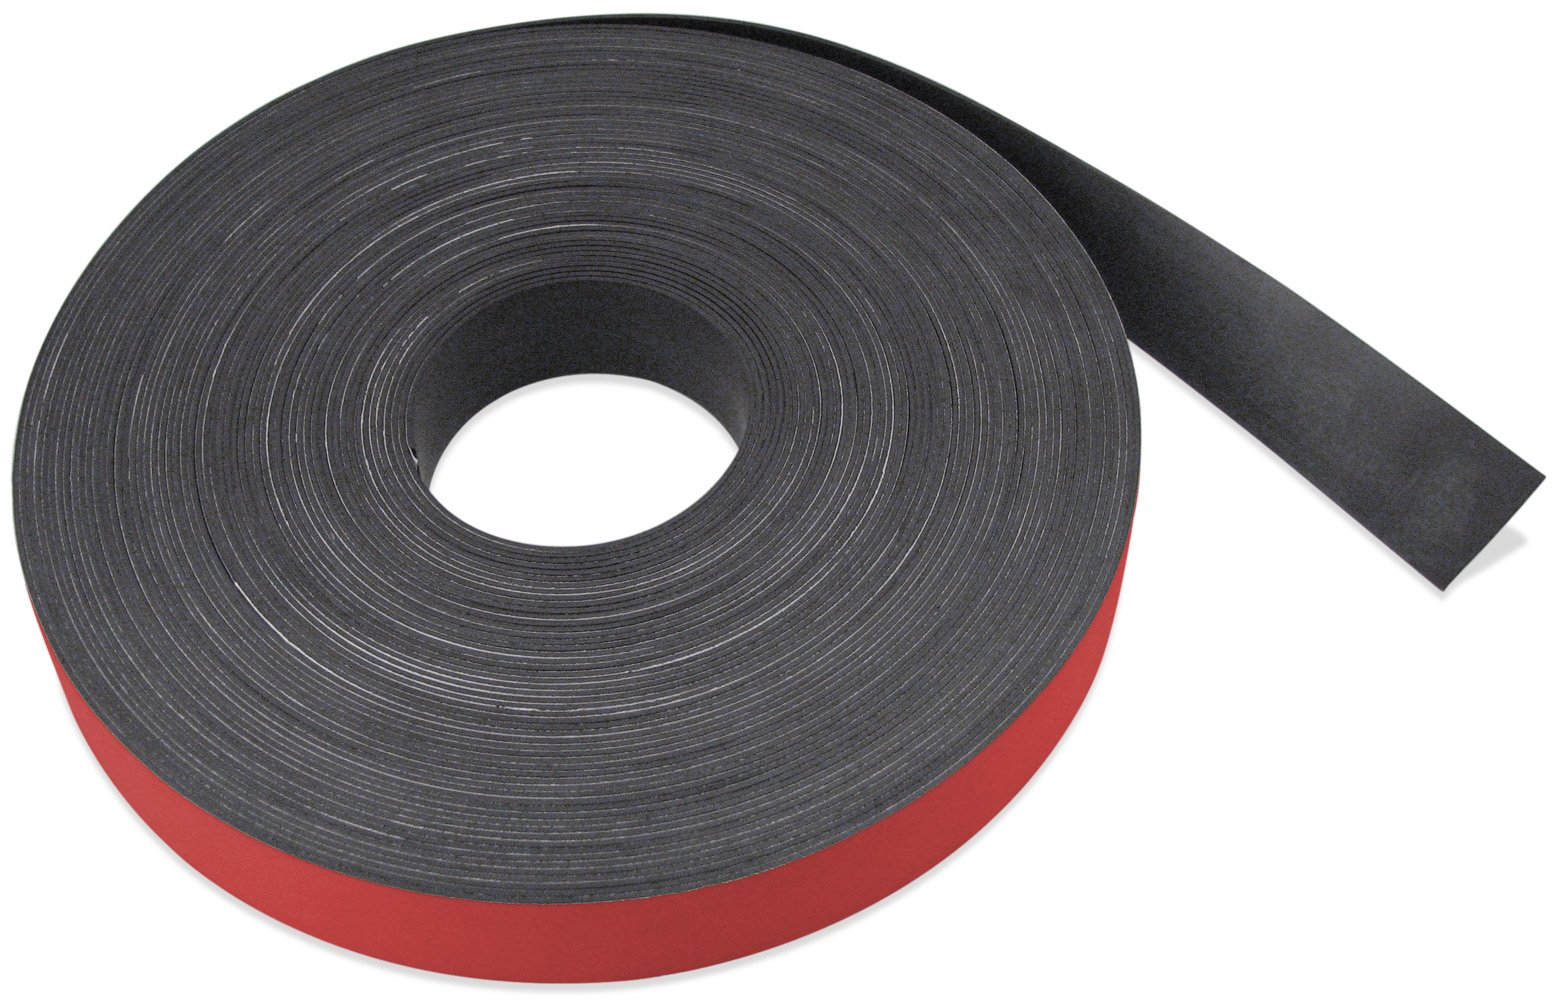 Flexible Magnet Strip with Red Vinyl Coating, 1/32'' Thick, 3'' Height, 50 Feet, 1 Roll